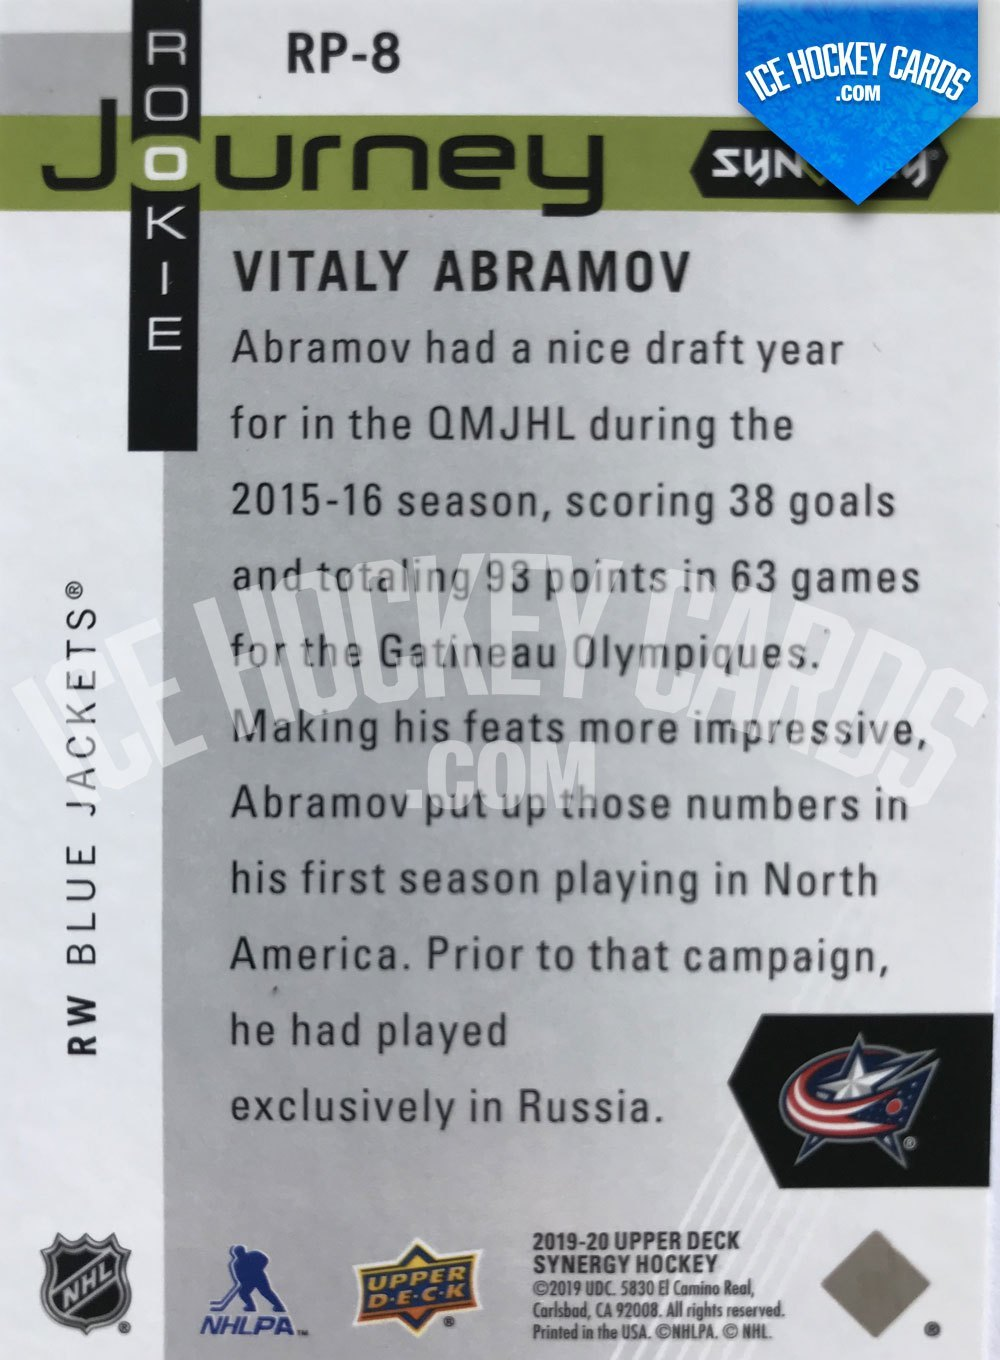 Upper Deck - Synergy 19-20 - Vitaly Abramov Rookie Journey back